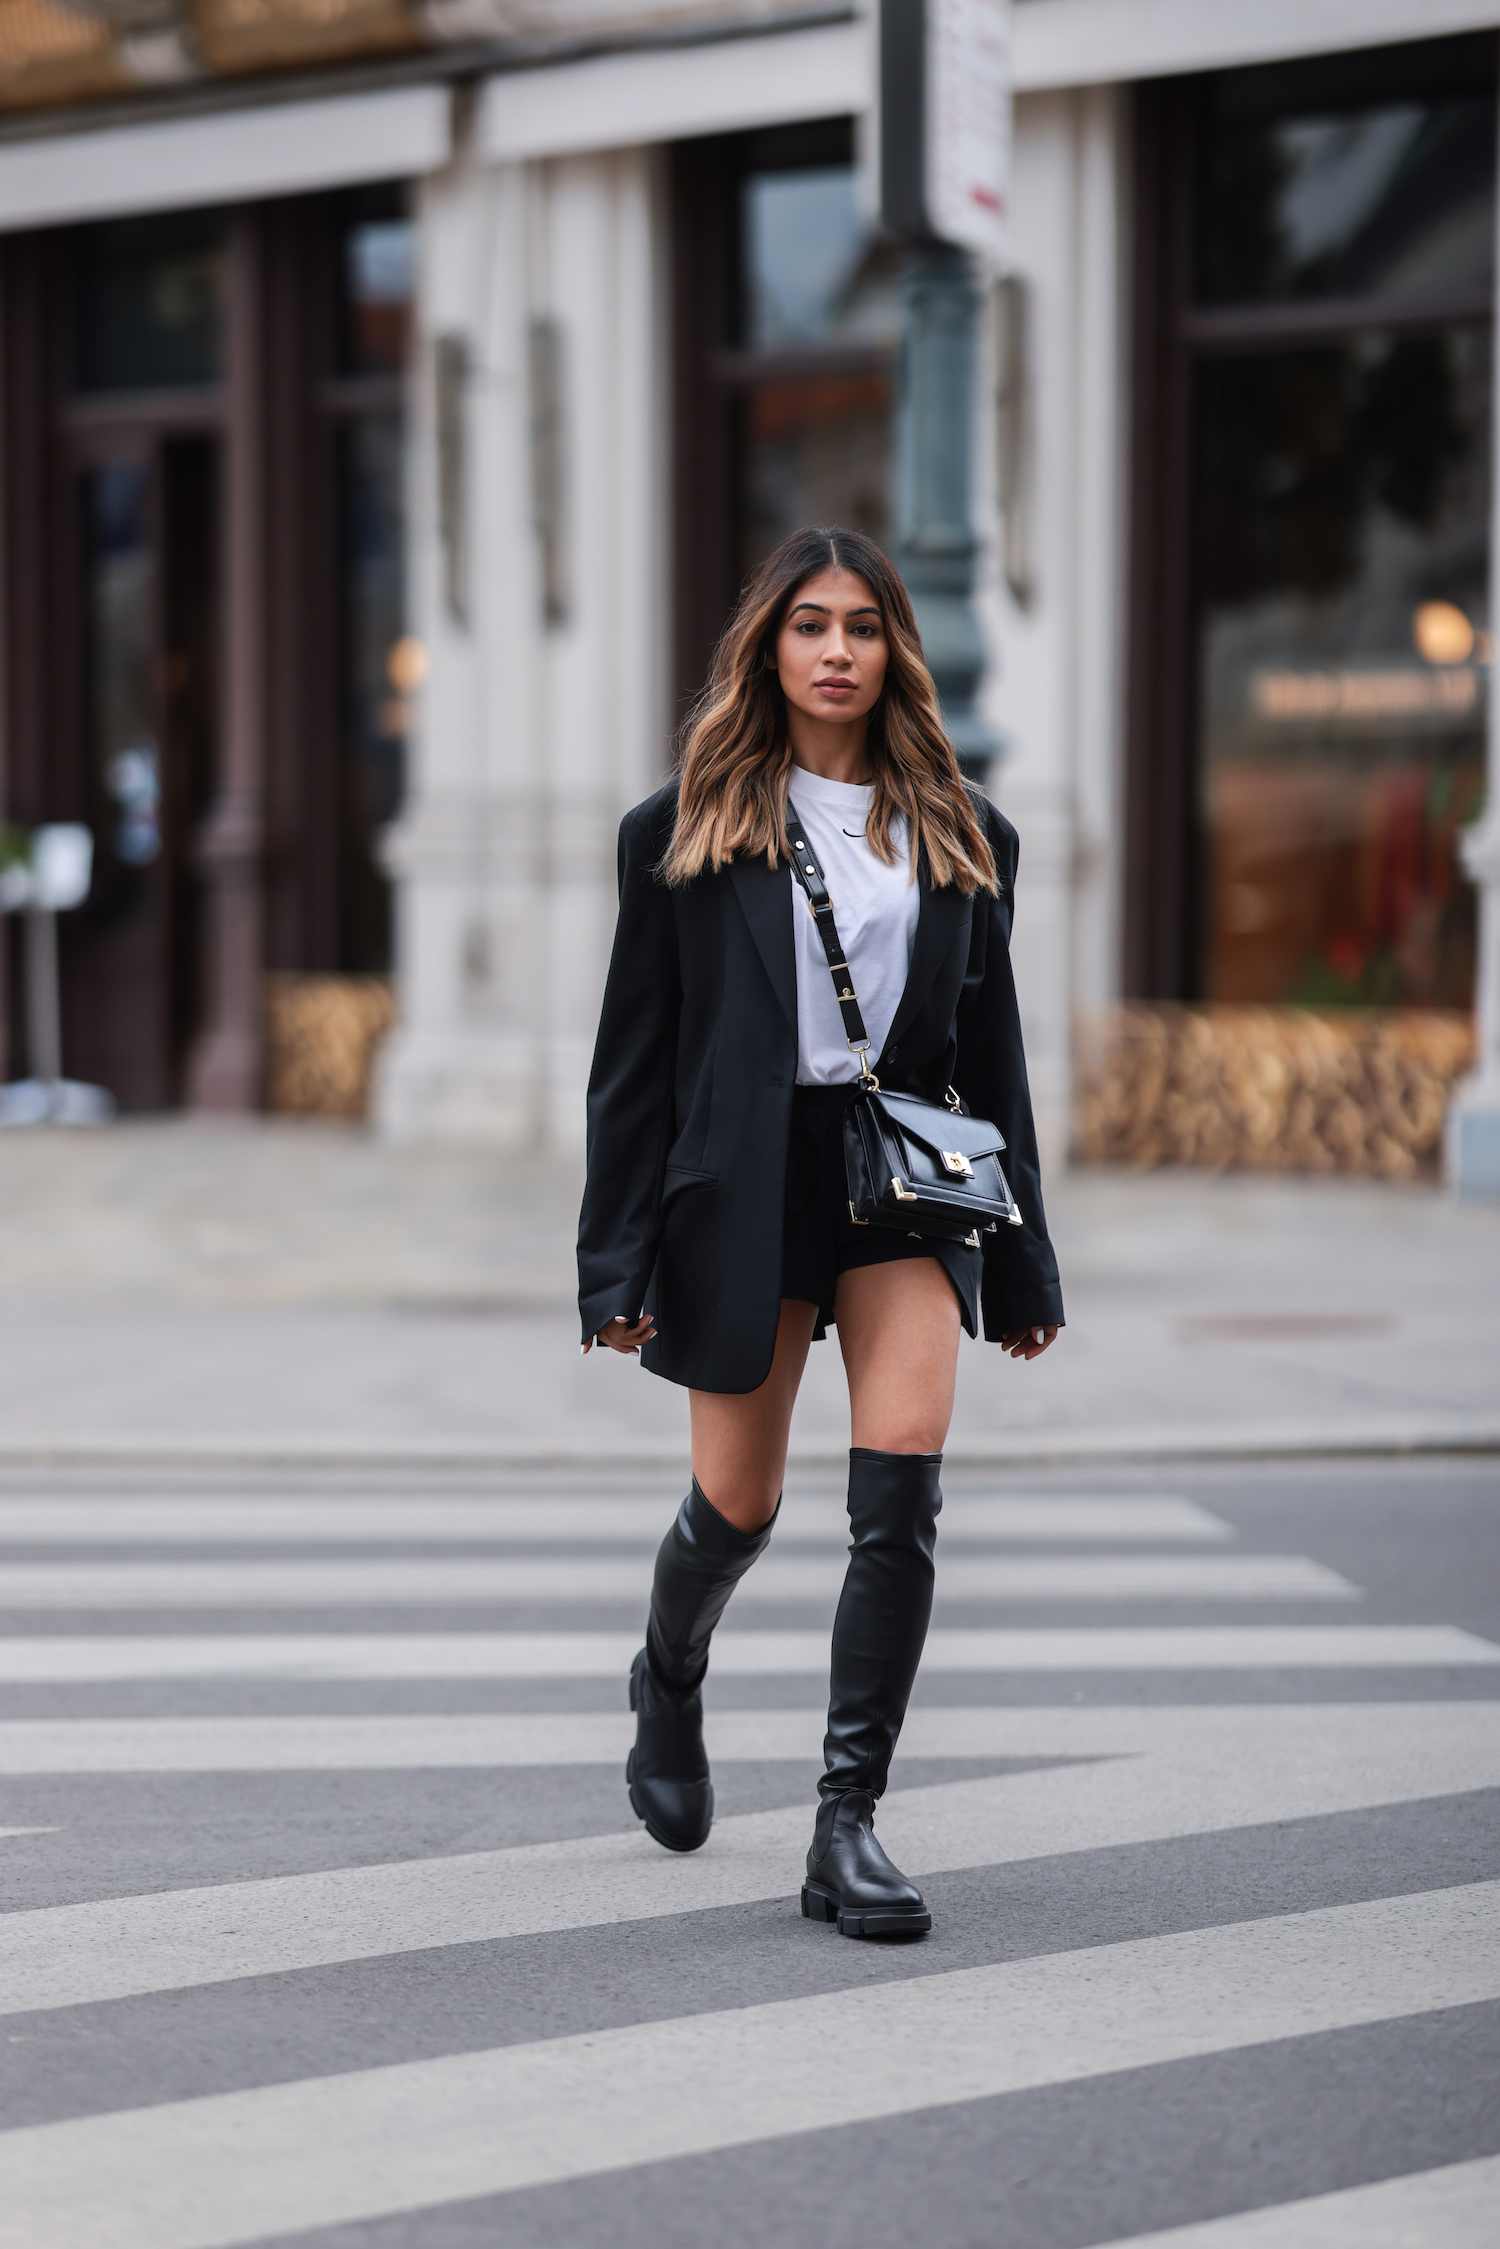 Sonia Dhillon walking across a zebra crossing in Vienna. She is wearing CPH544 Overknee Boots in vitello black, a black shorts, a white T-shirt from Nike, a oversized blazer in black and a crossbody bag.